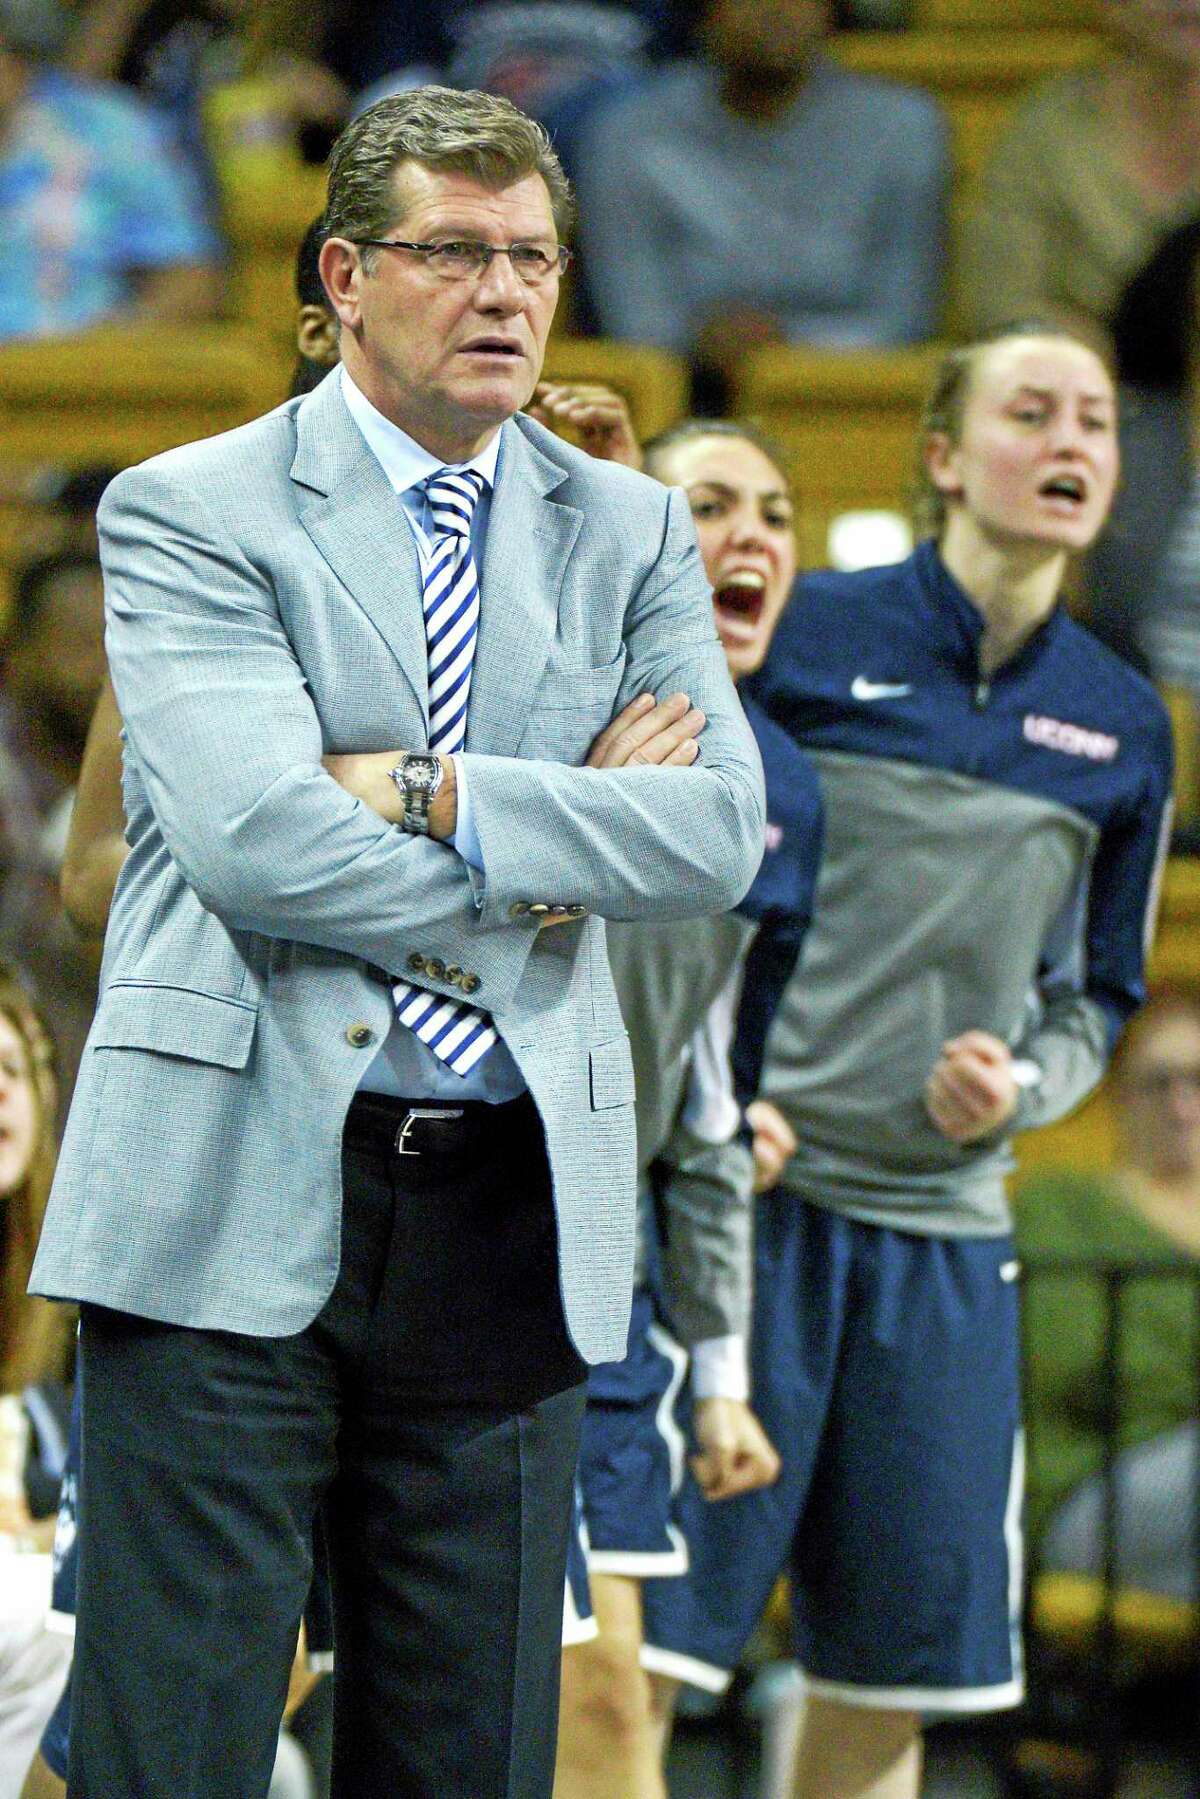 UConn coach Geno Auriemma, left, has awarded scholarships to walk-ons Briana Pulido, center, and Ansonia's Tierney Lawlor, right.